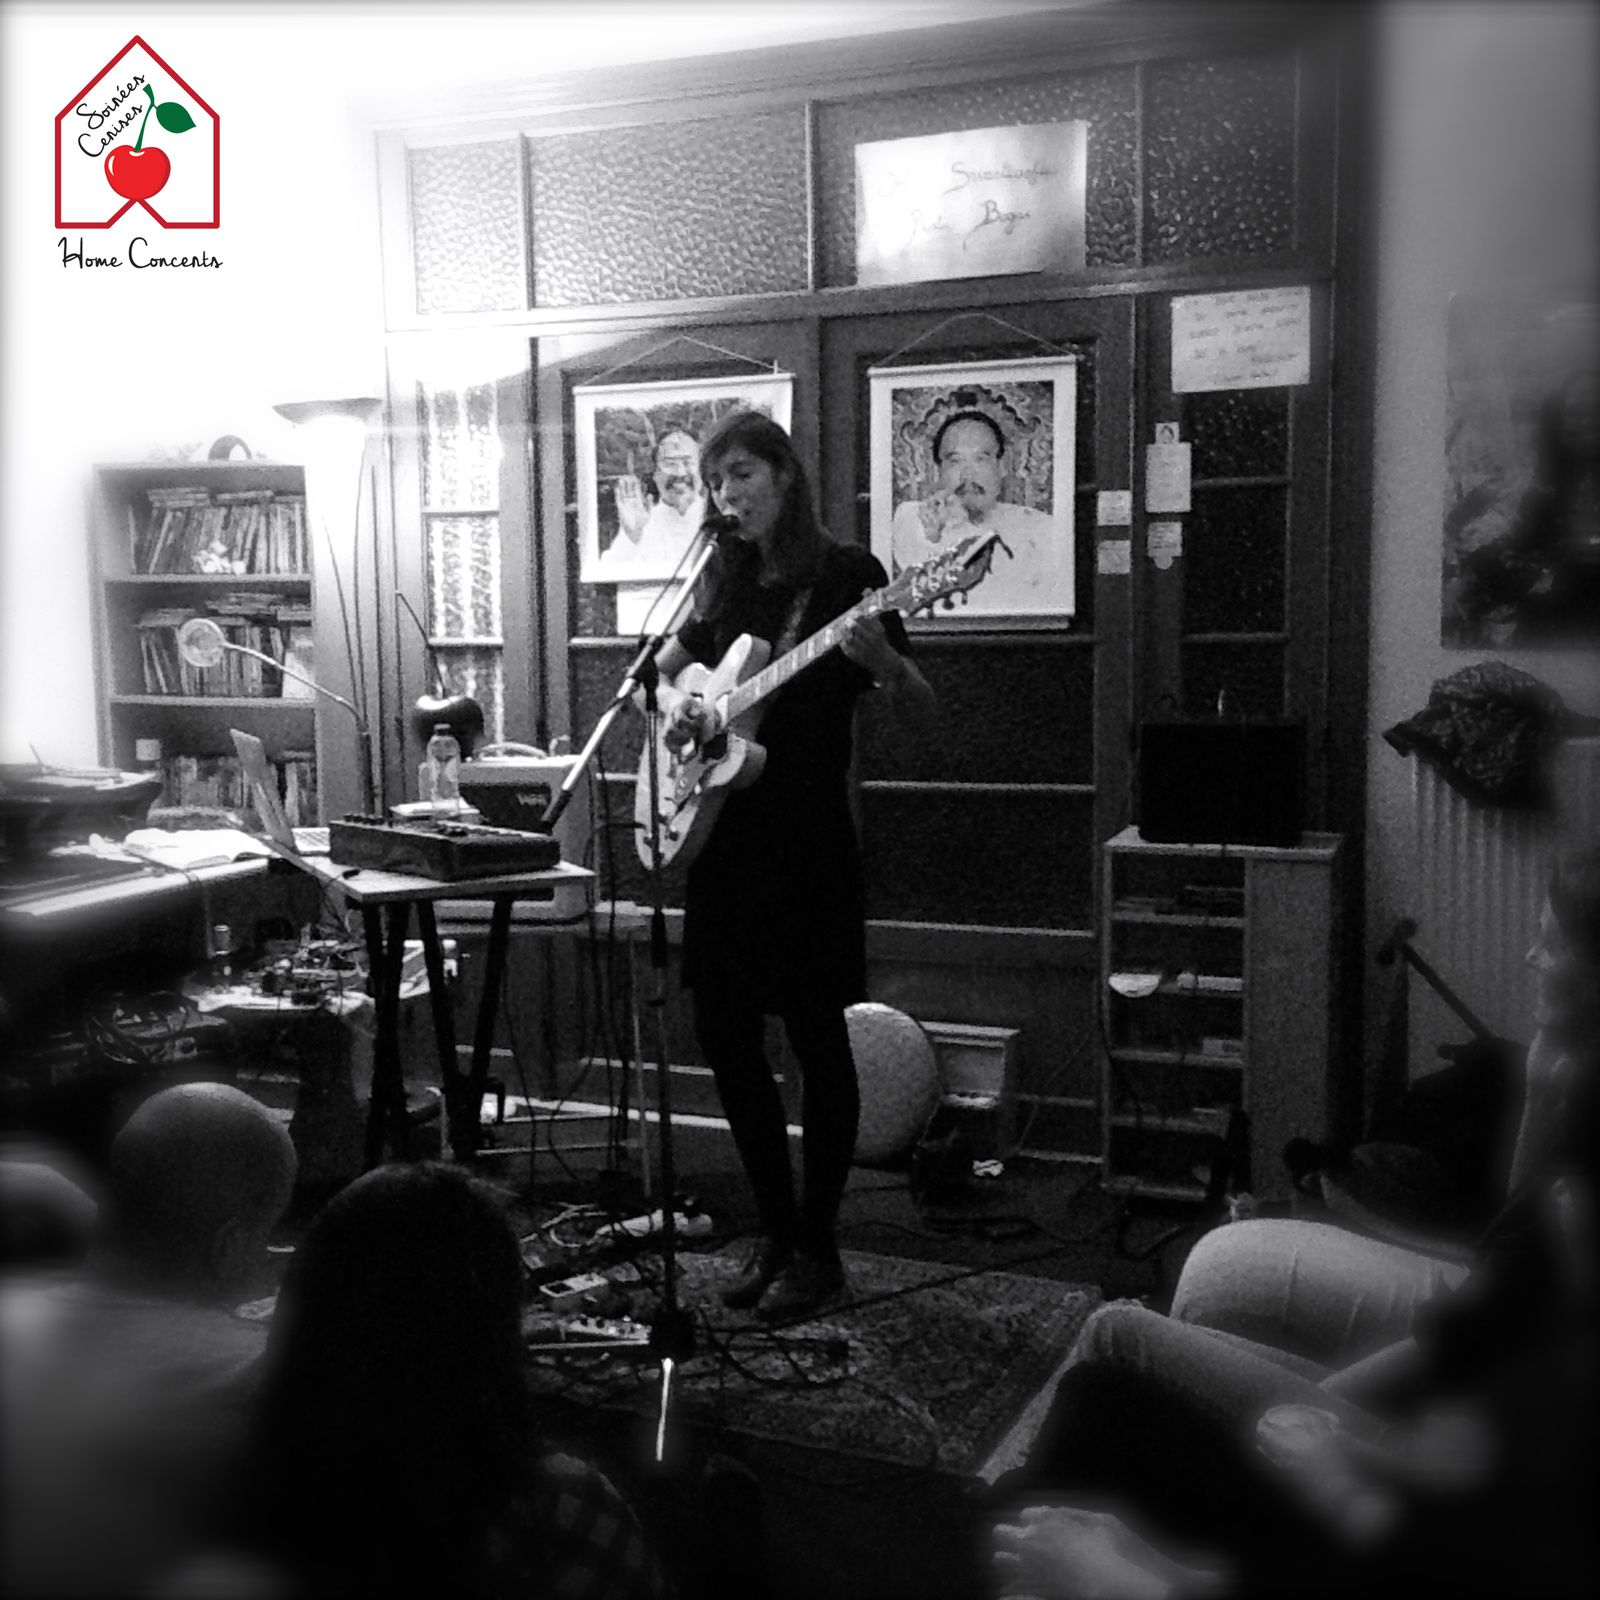 ► Clare Louise @ Home concert (Forest / Union ) - 20/11/2016